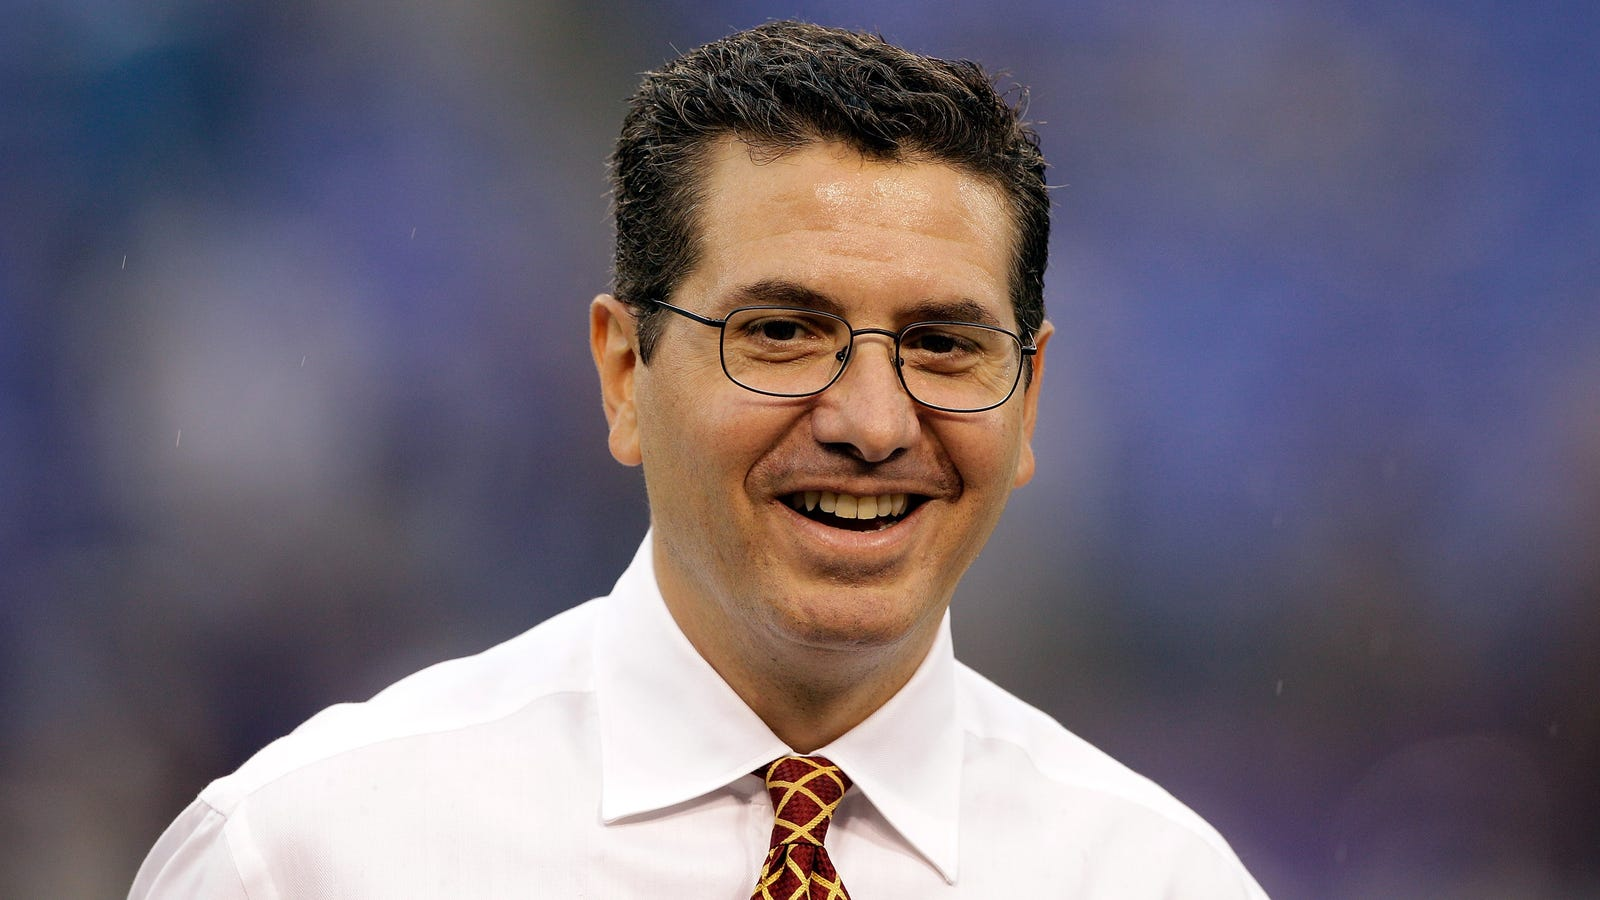 Man Cave Radio Show Cancelled : Did dan snyder kill a redskins critic s radio show